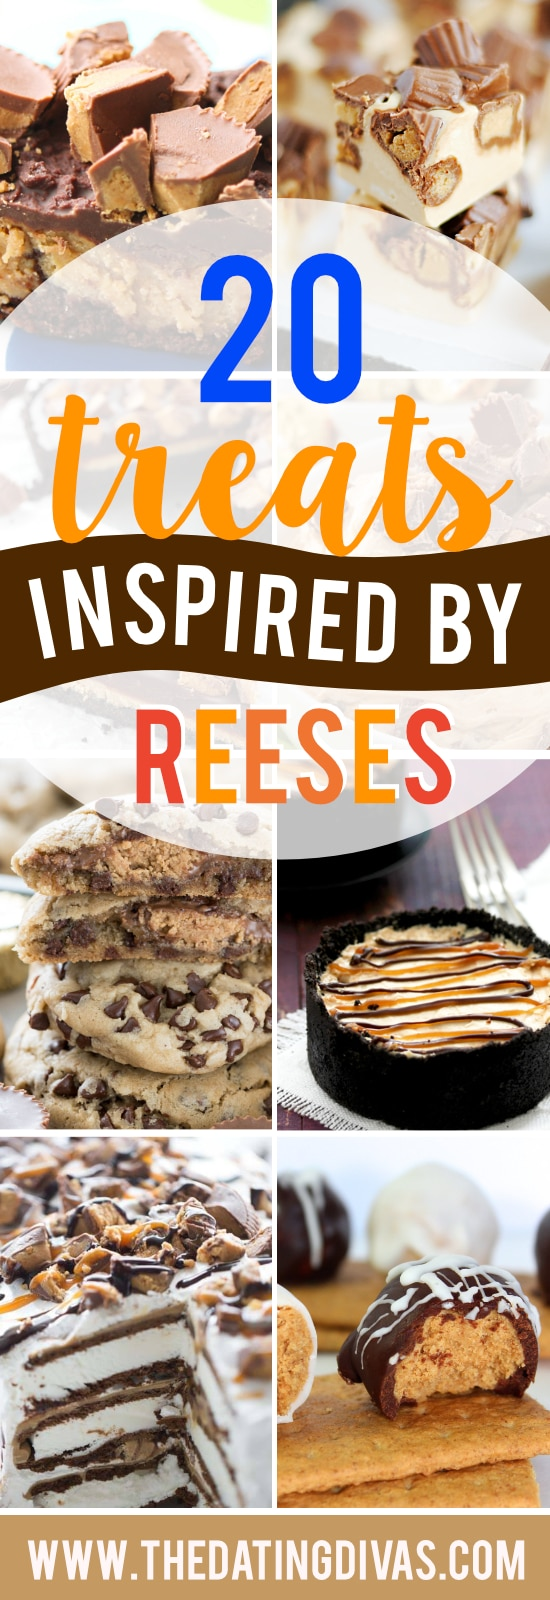 Treats Inspired by Reese's Peanut Butter Cups